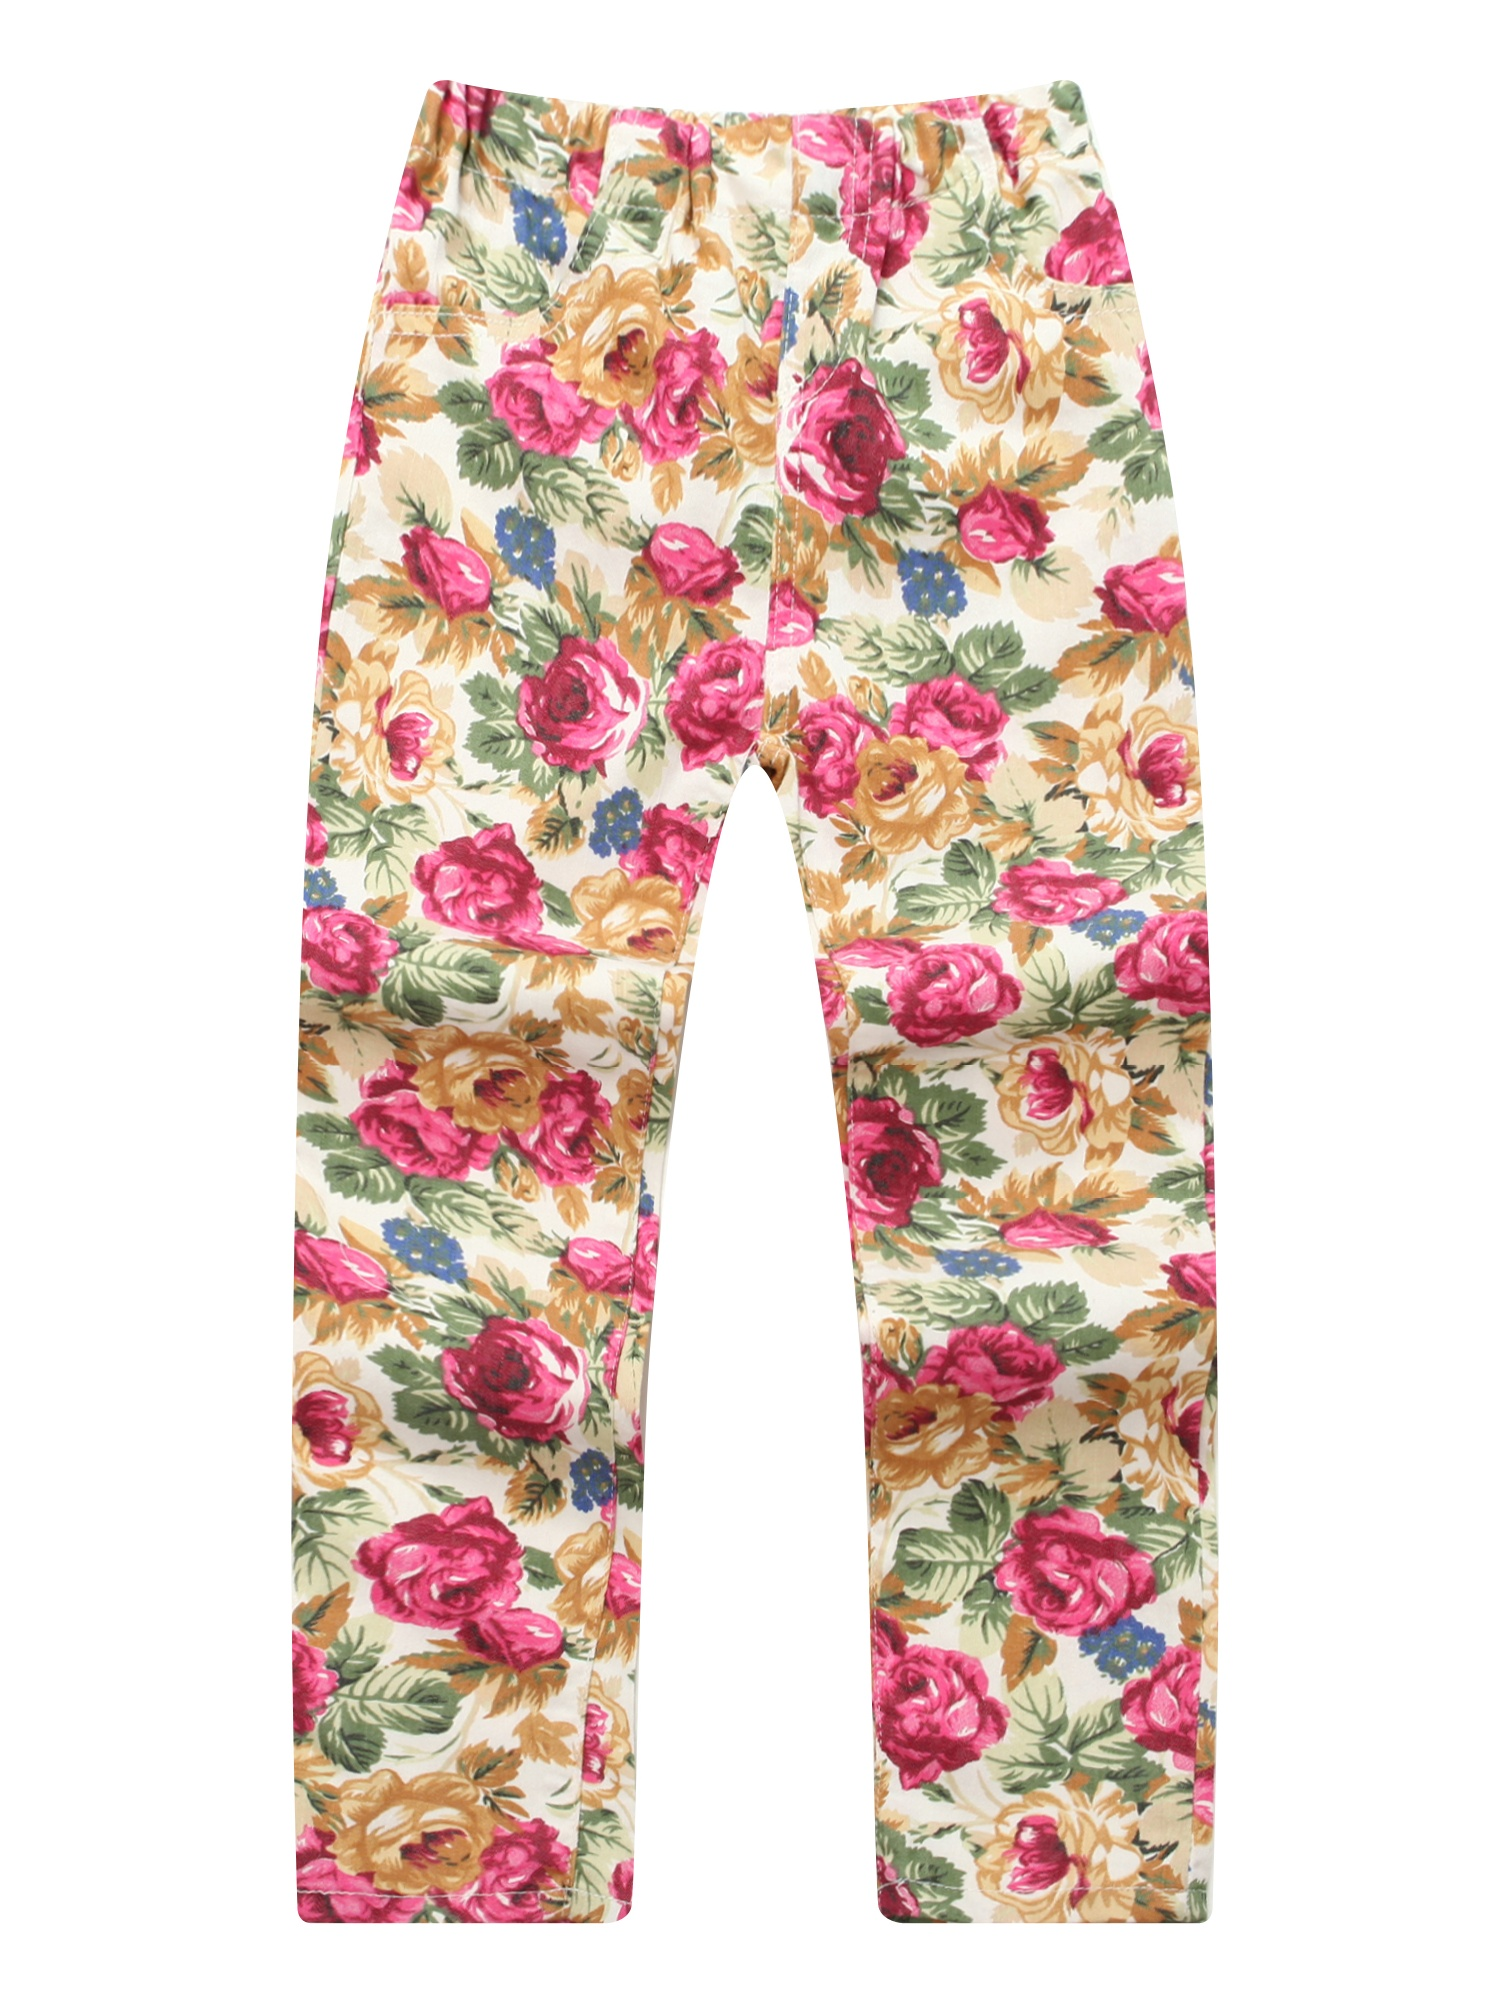 Richie House Girls' Pants with Colorful Flower Print RH1226